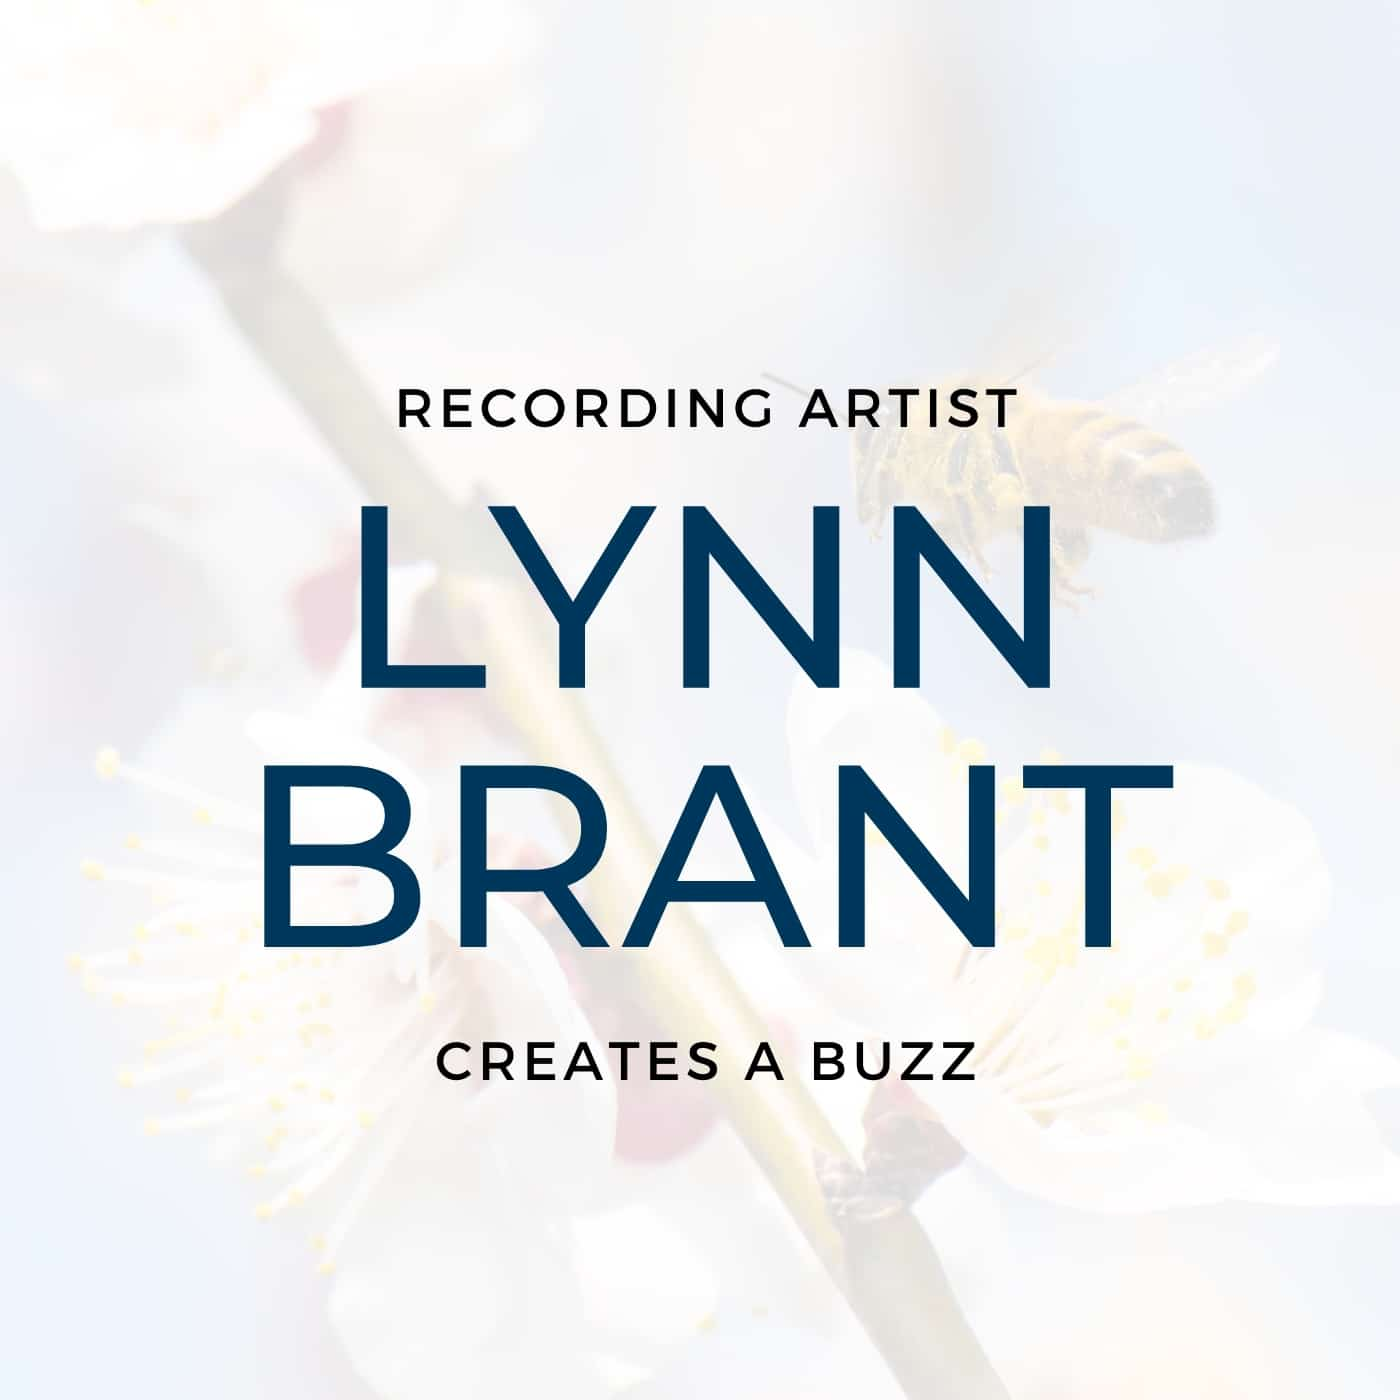 RECORDING ARTIST LYNN BRYANT CREATES A BUZZ